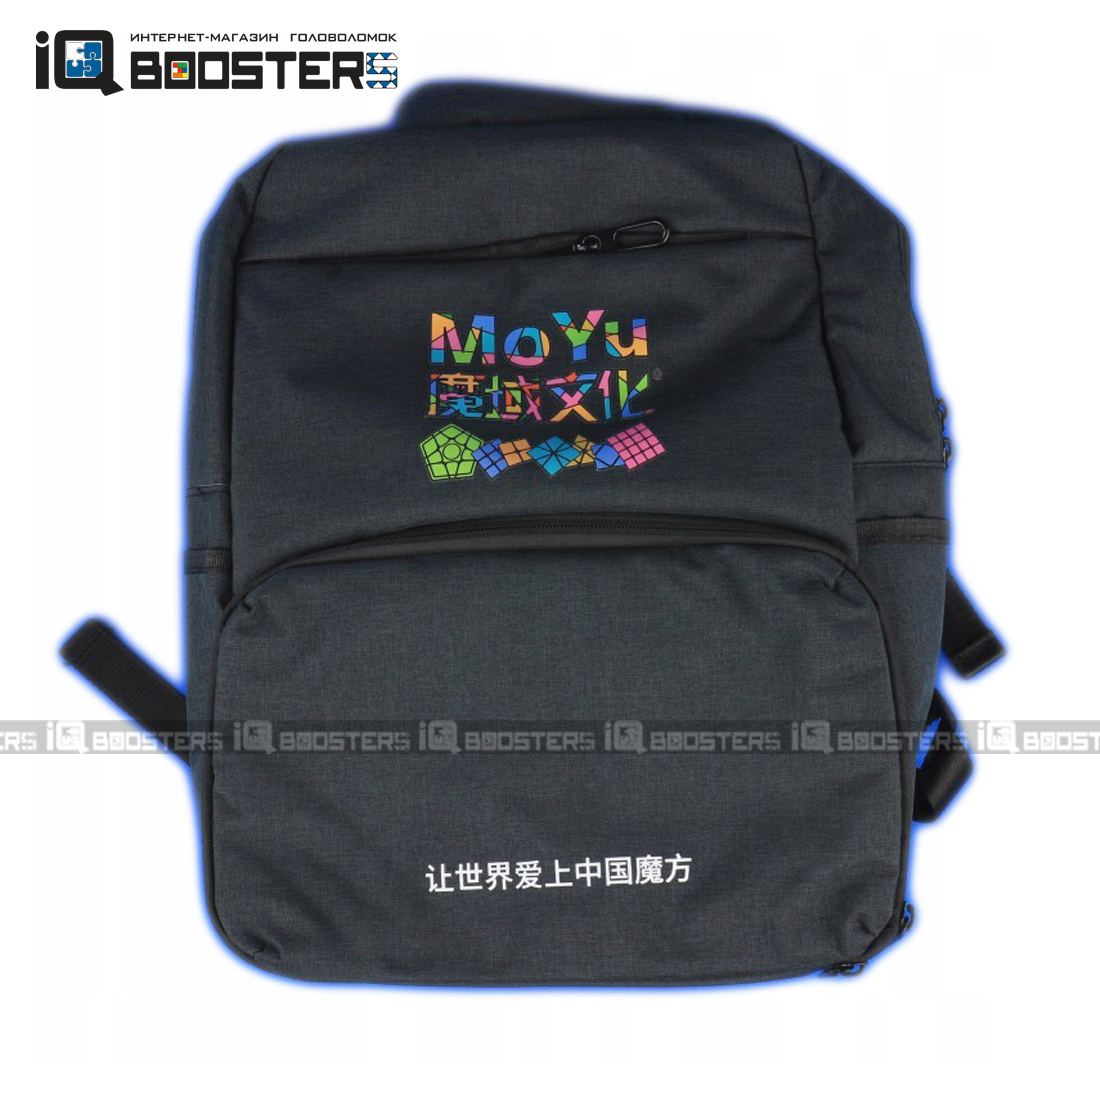 moyu_backpack_03